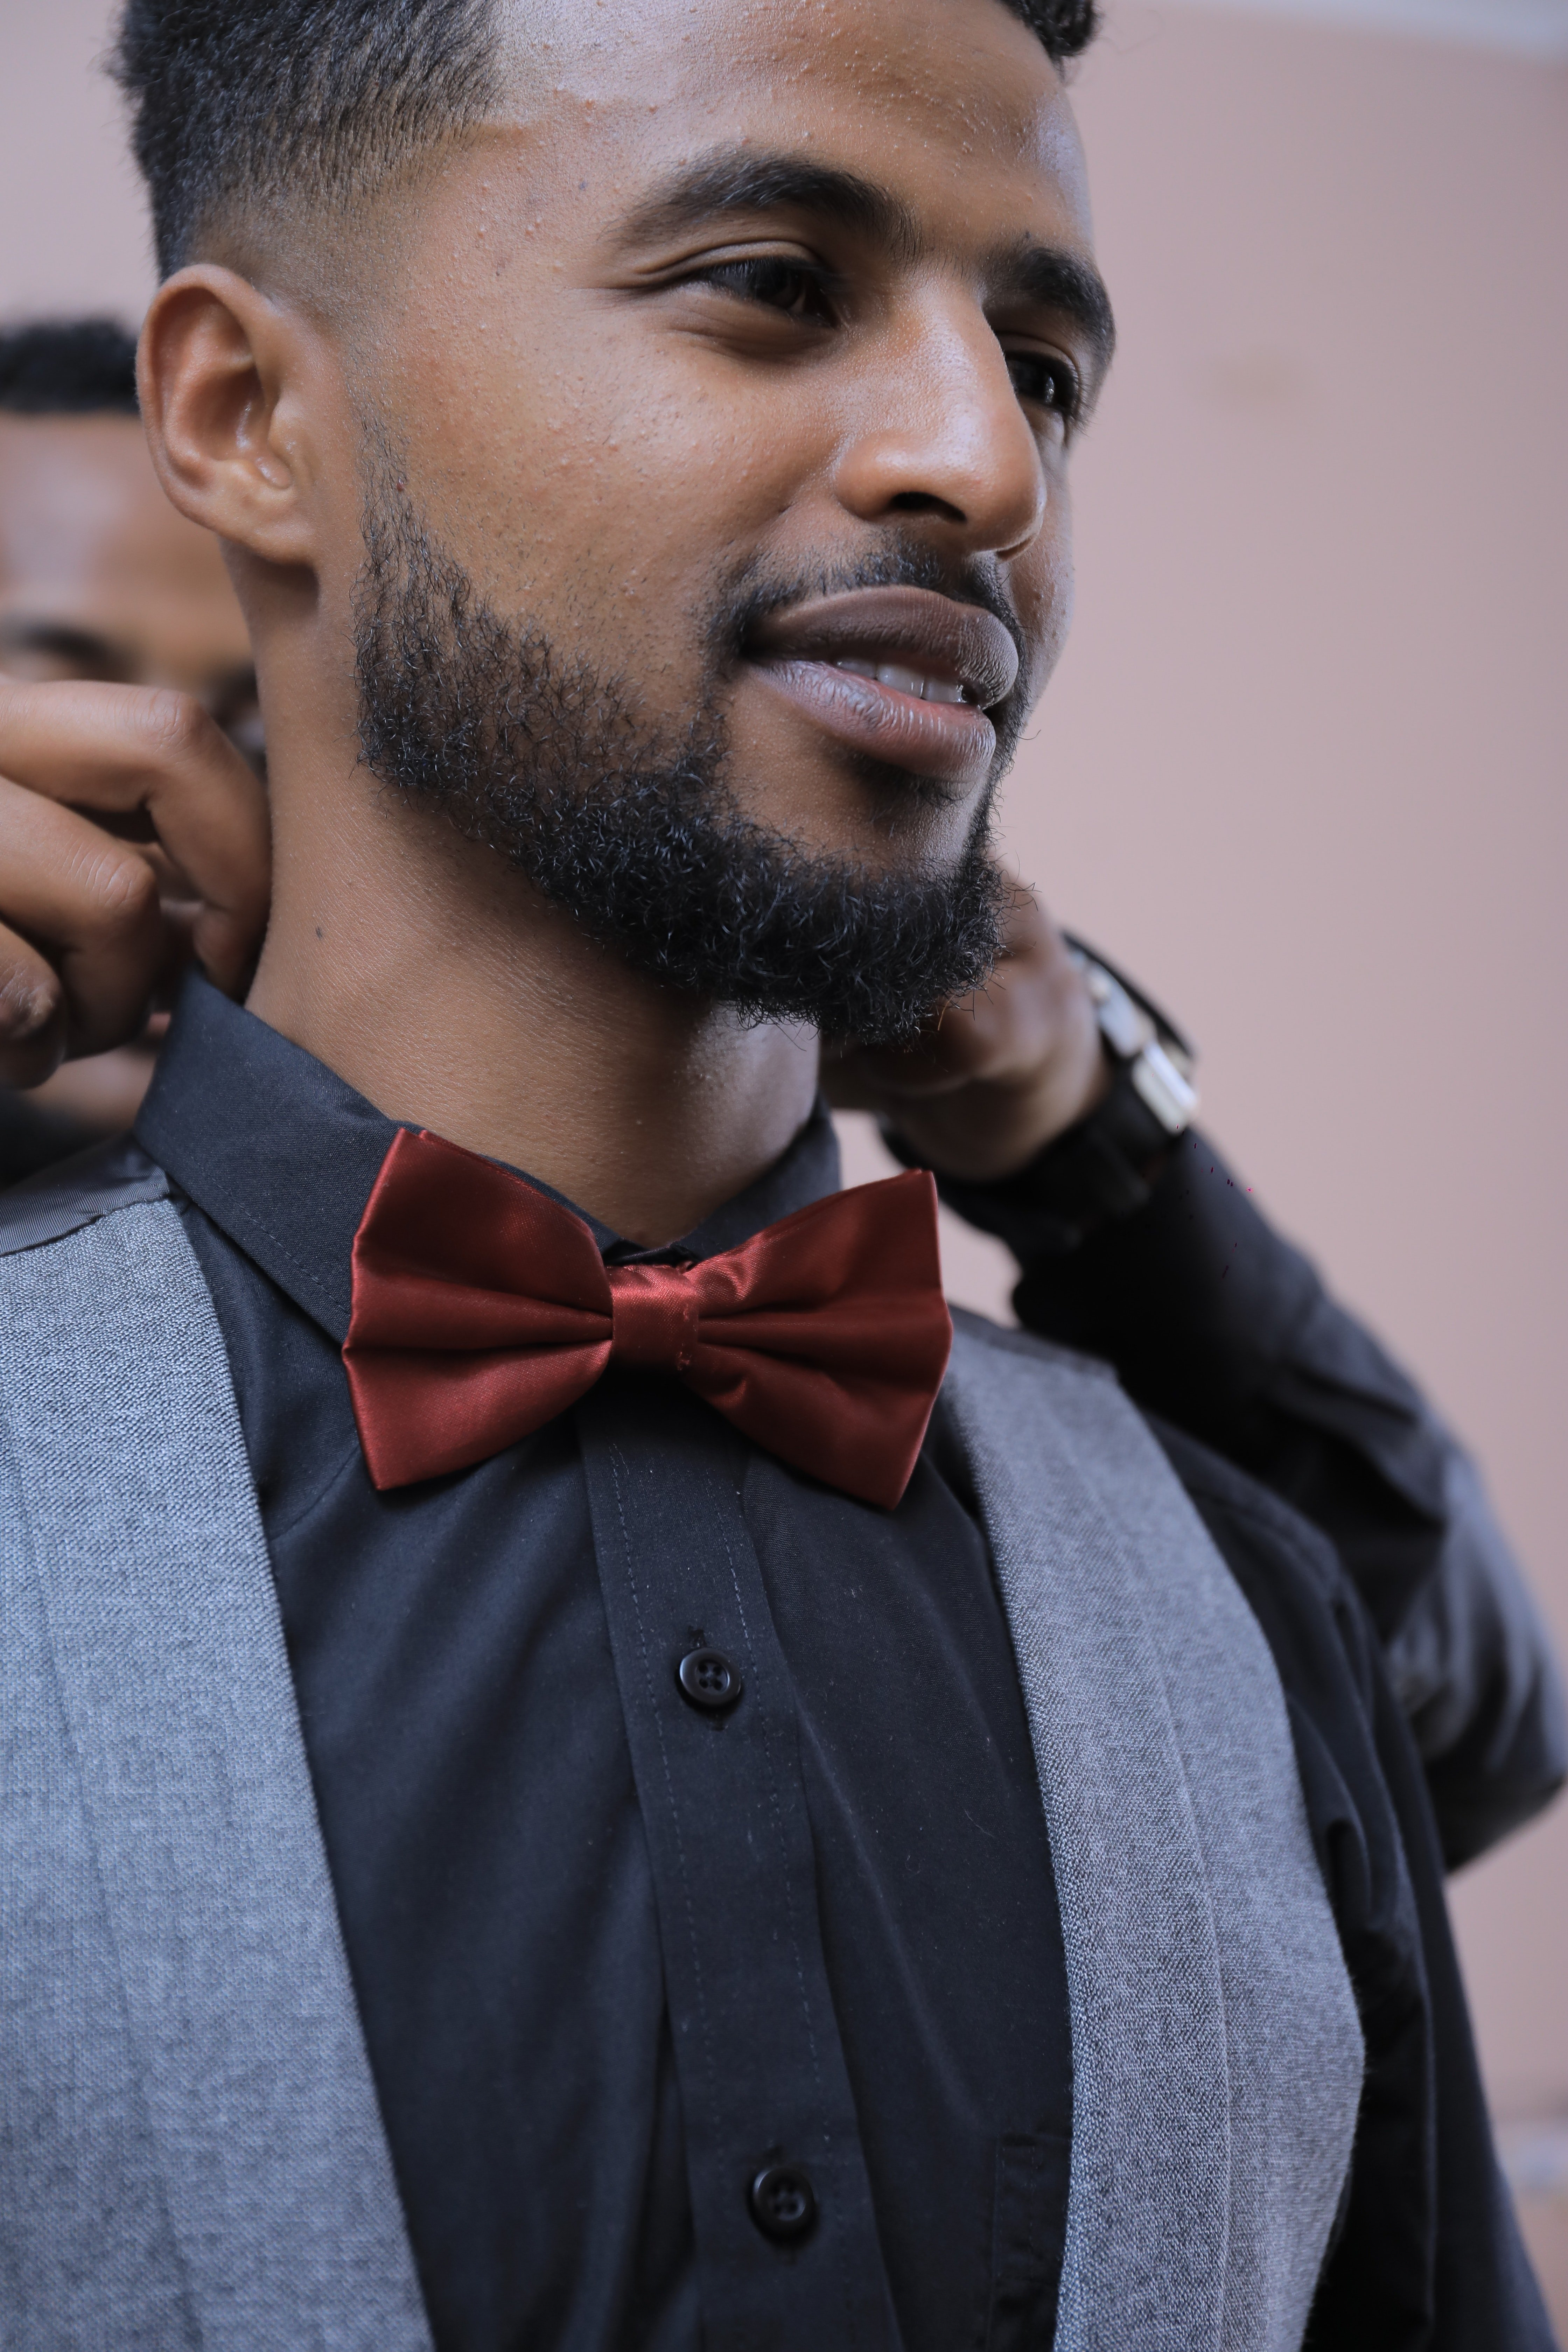 The stranger helped the man tie his bow tie.   Photo: Pexels